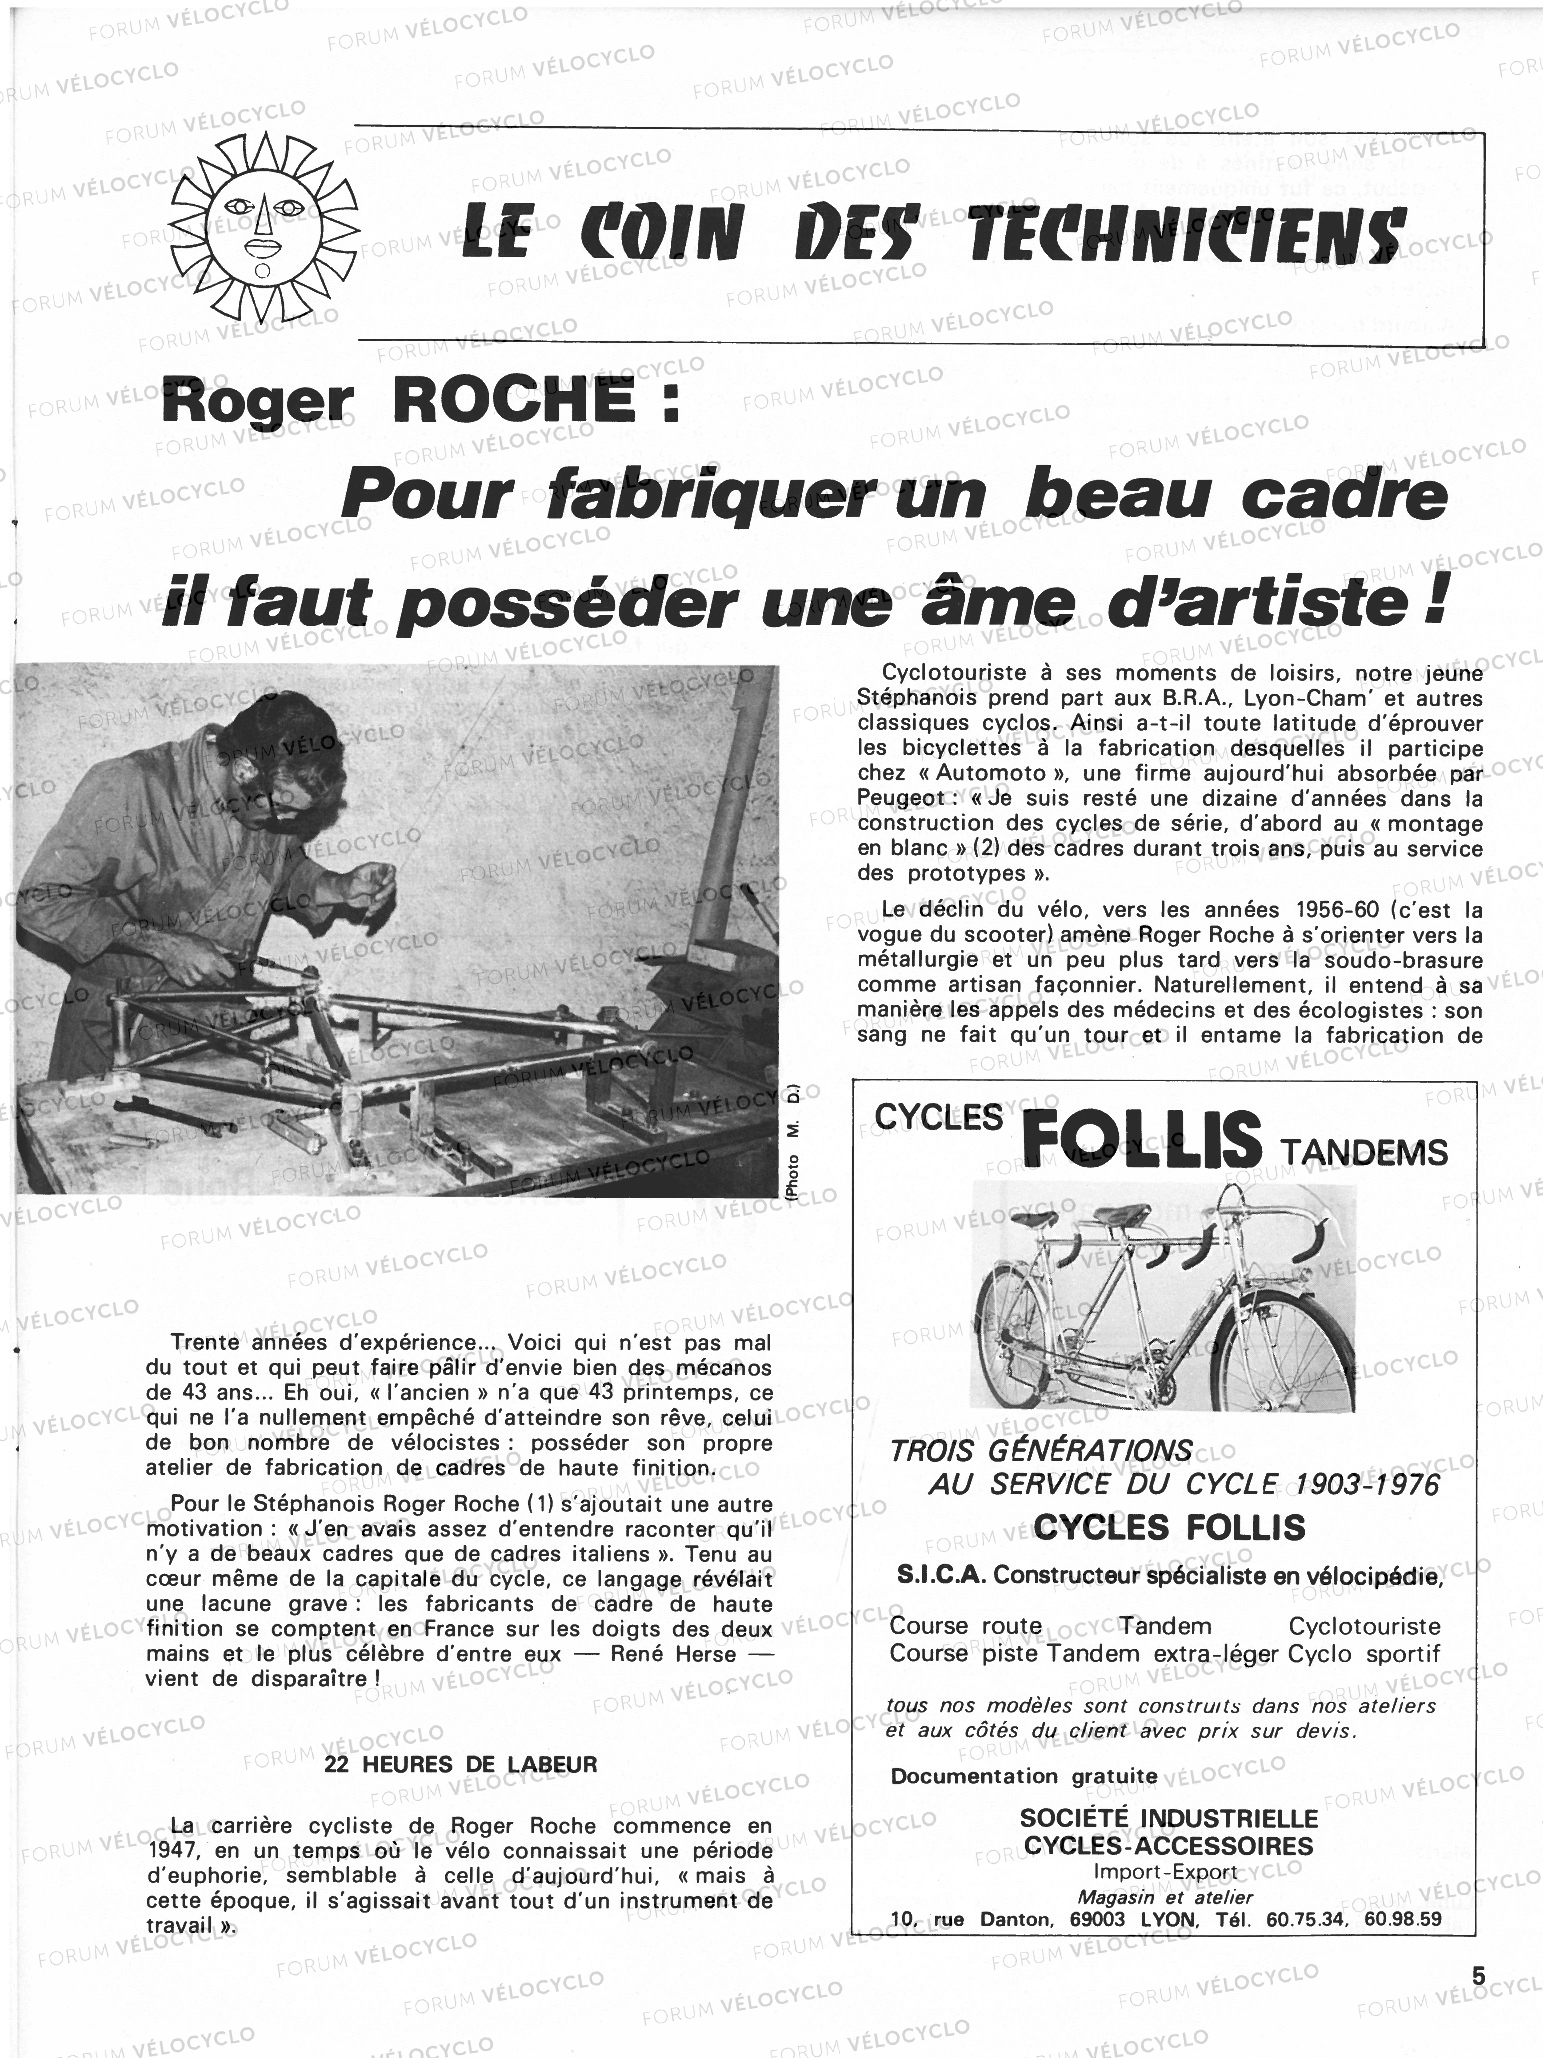 ARTICLE ROGER ROCHE CYCLO 2000 N289 DEC 1976 VELOCYCLO